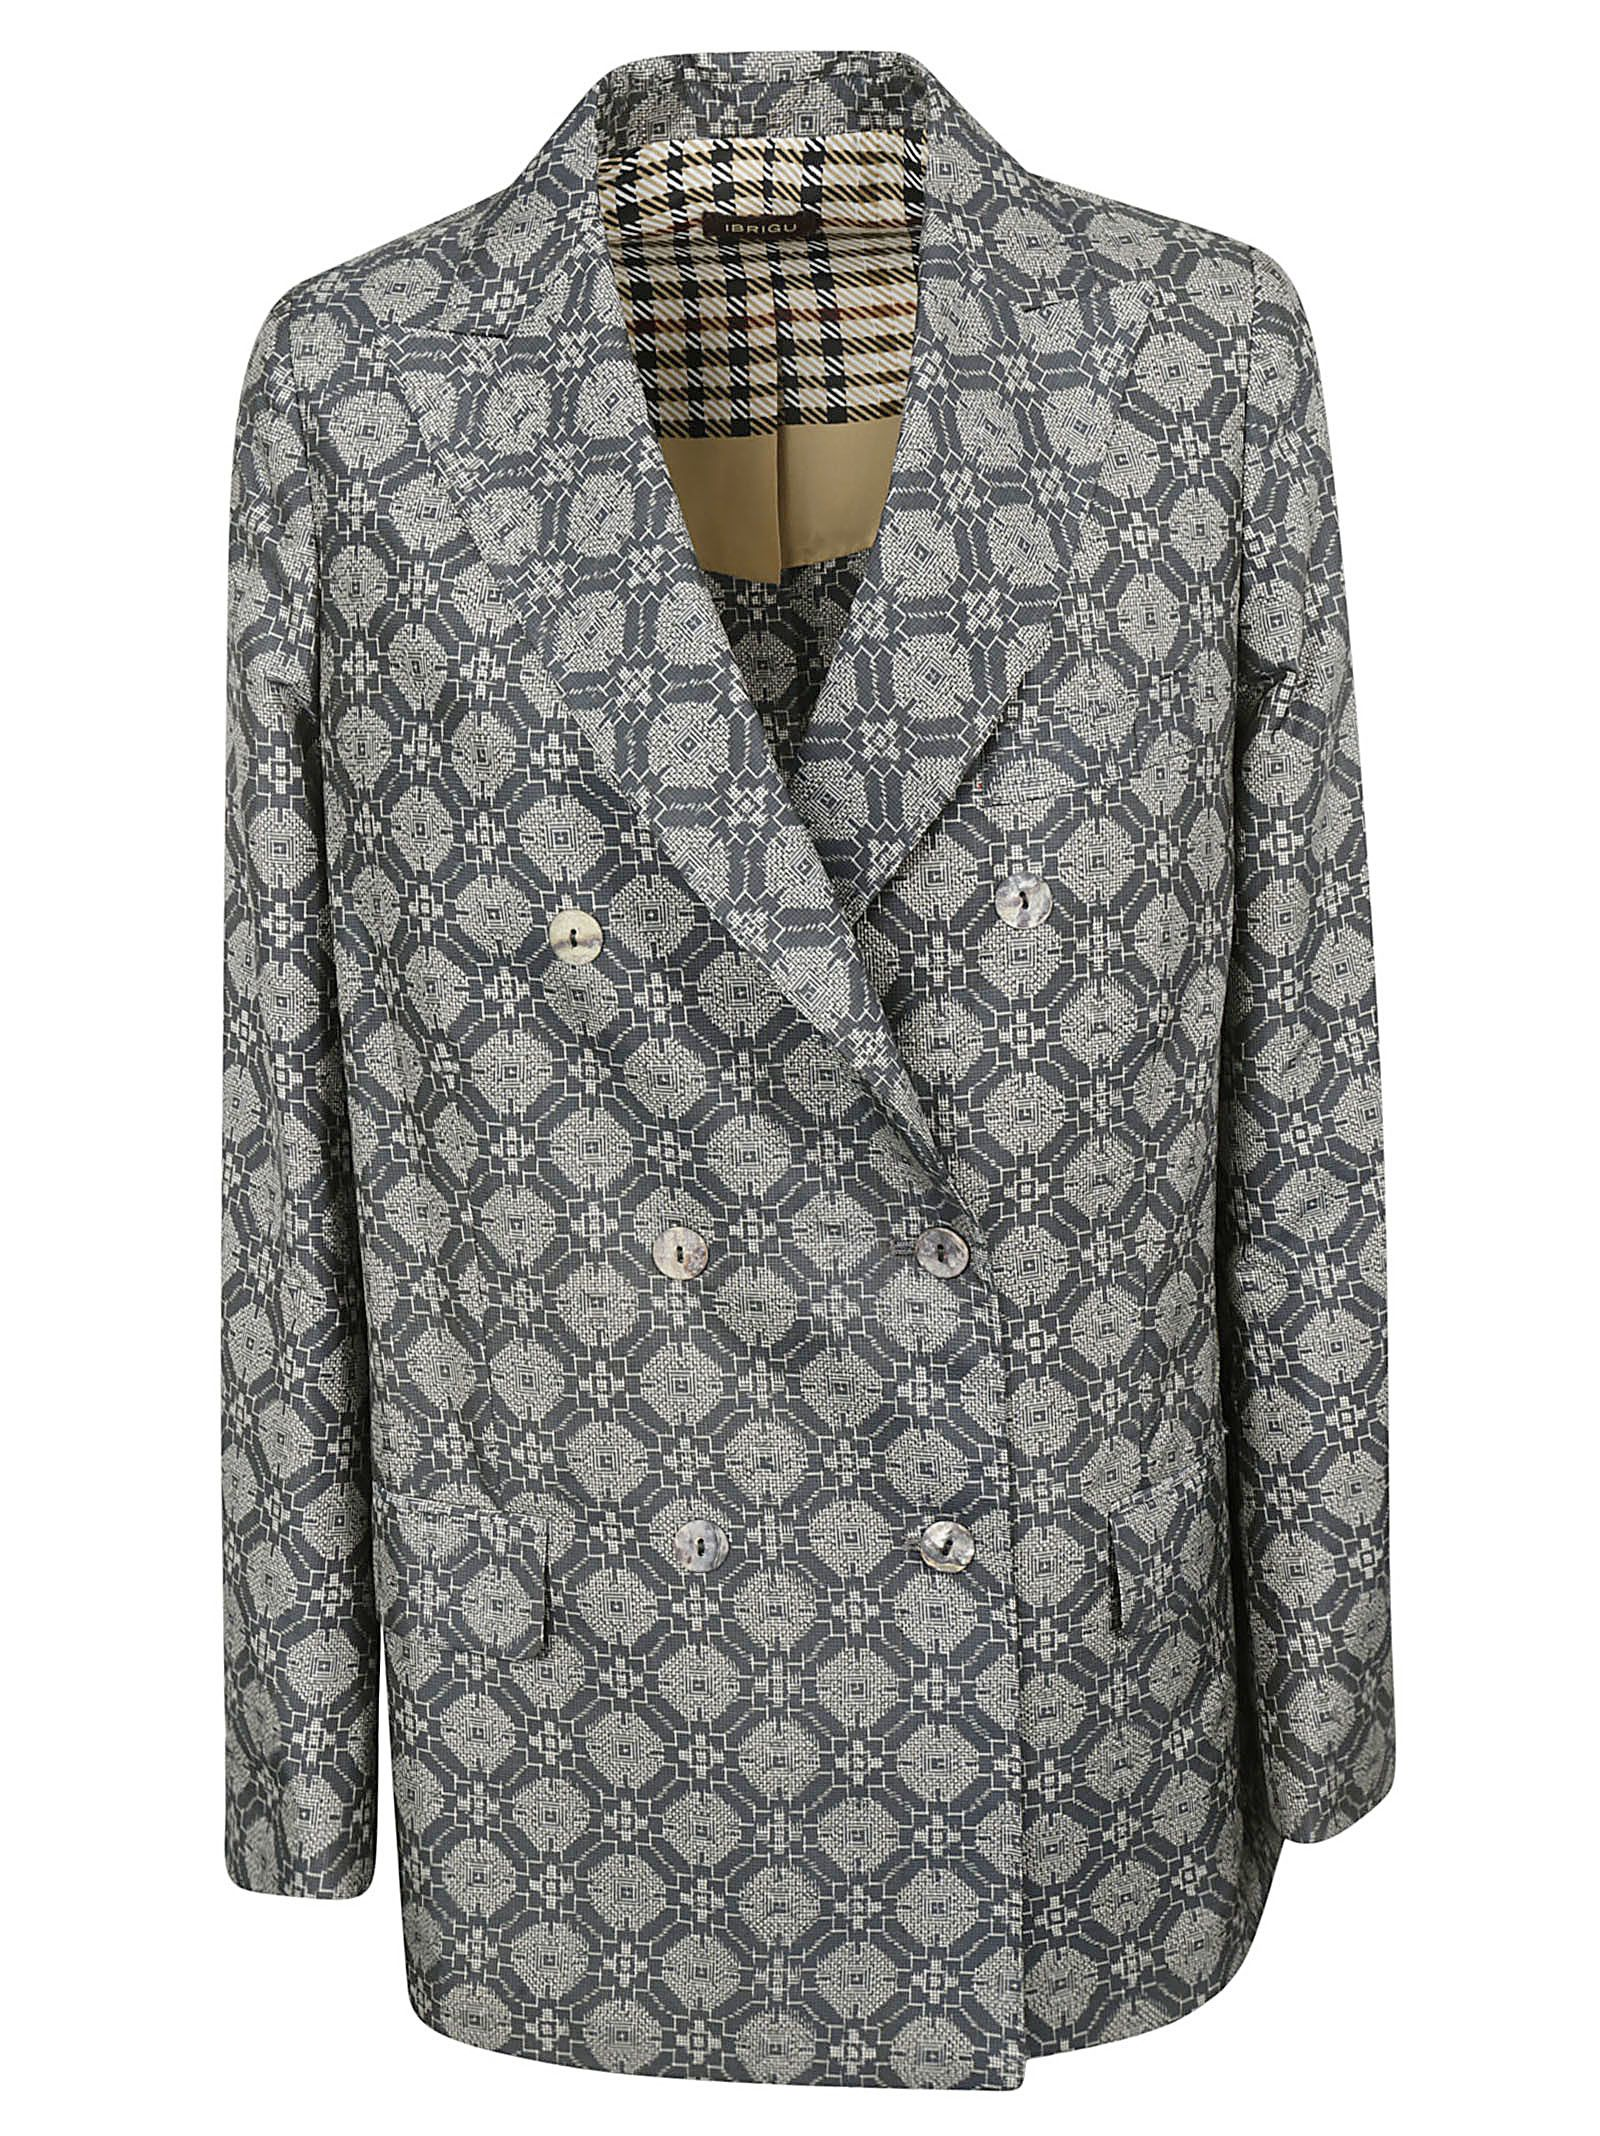 IBRIGU Double Breasted Jacket in Fantasy4